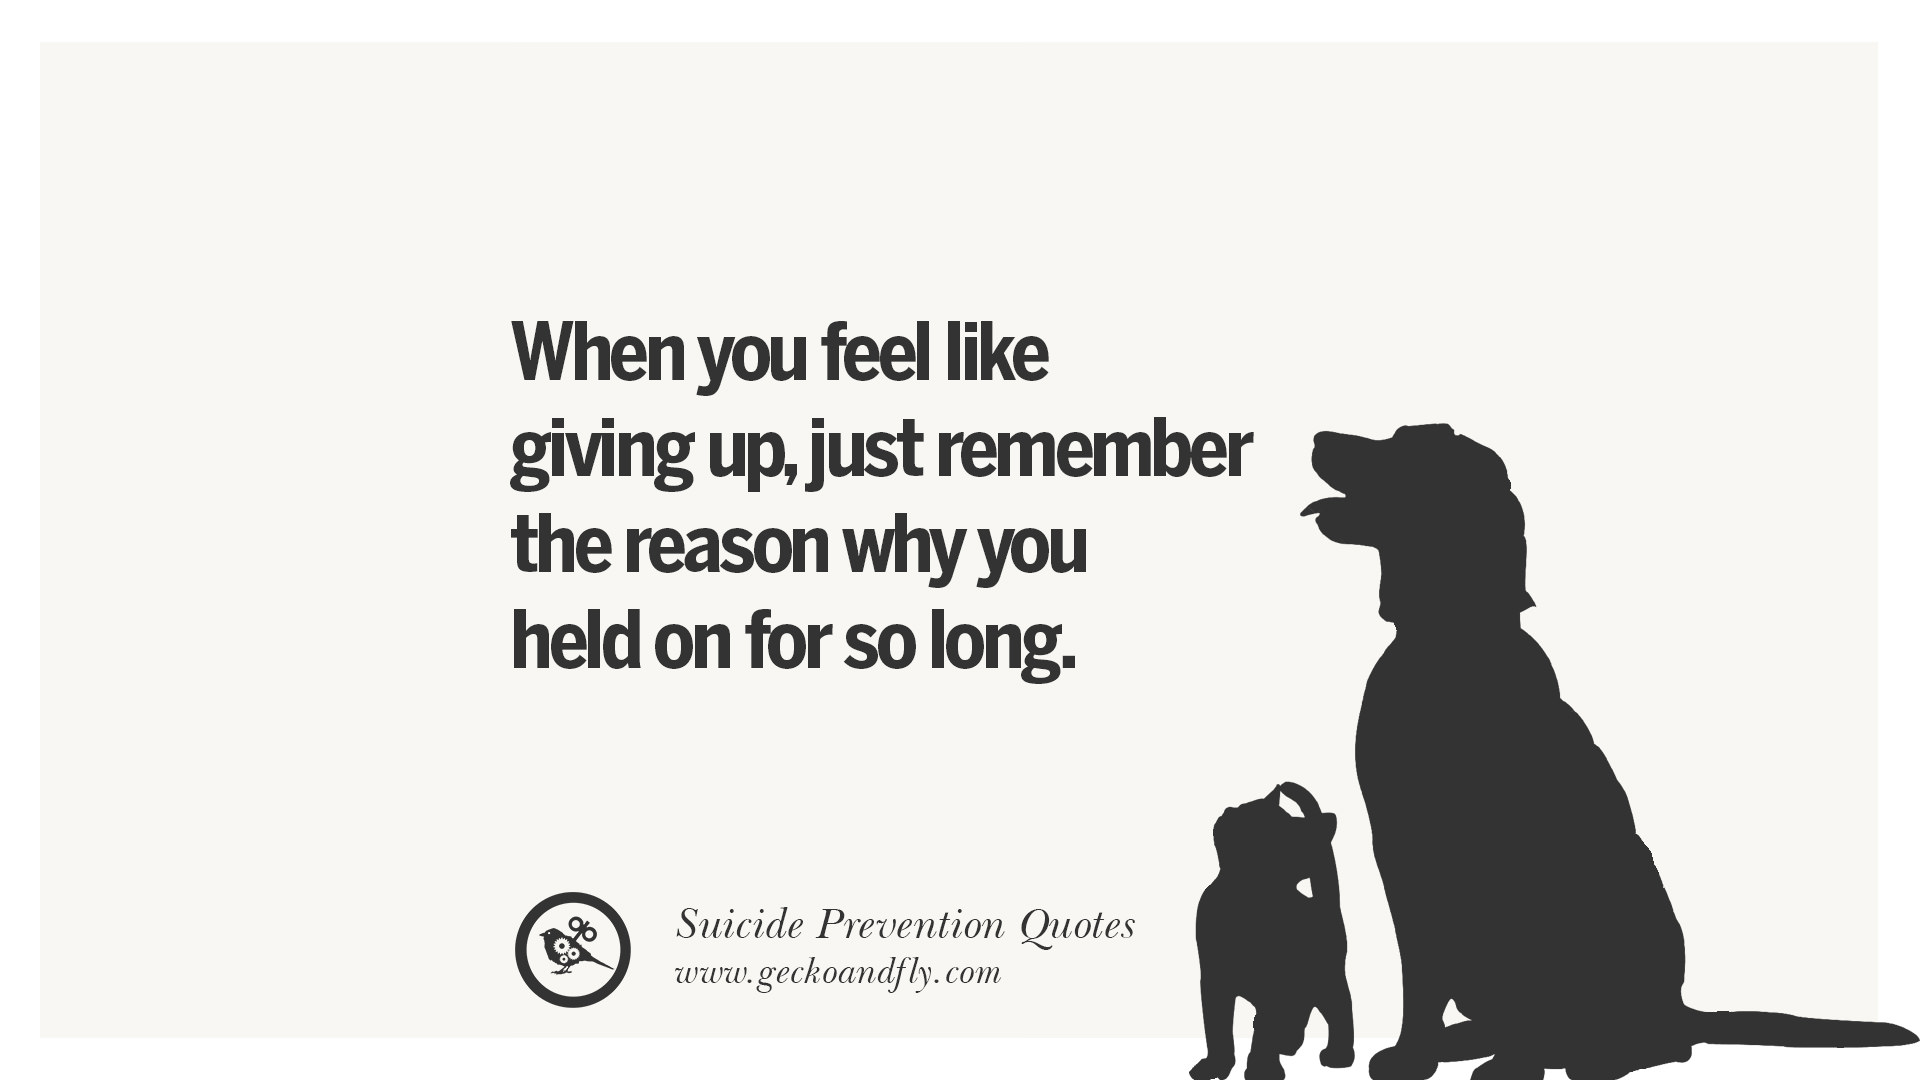 Suicide Prevention Quotes Magnificent 30 Helpful Suicidal Prevention Ideation Thoughts And Quotes